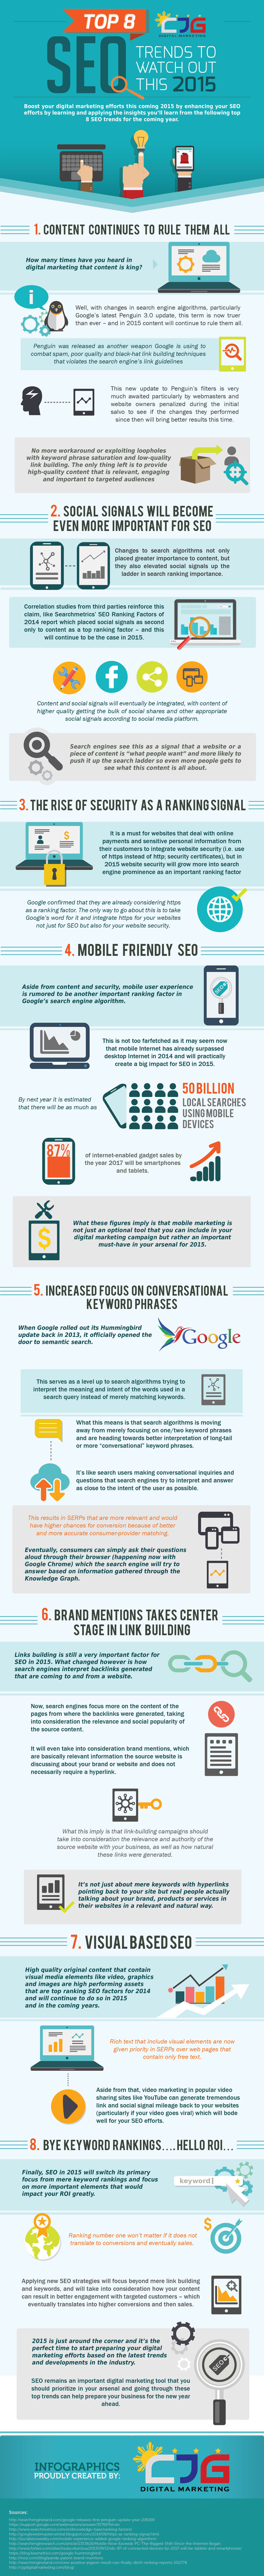 8-seo-trends-to-watch-out-for-in-2015